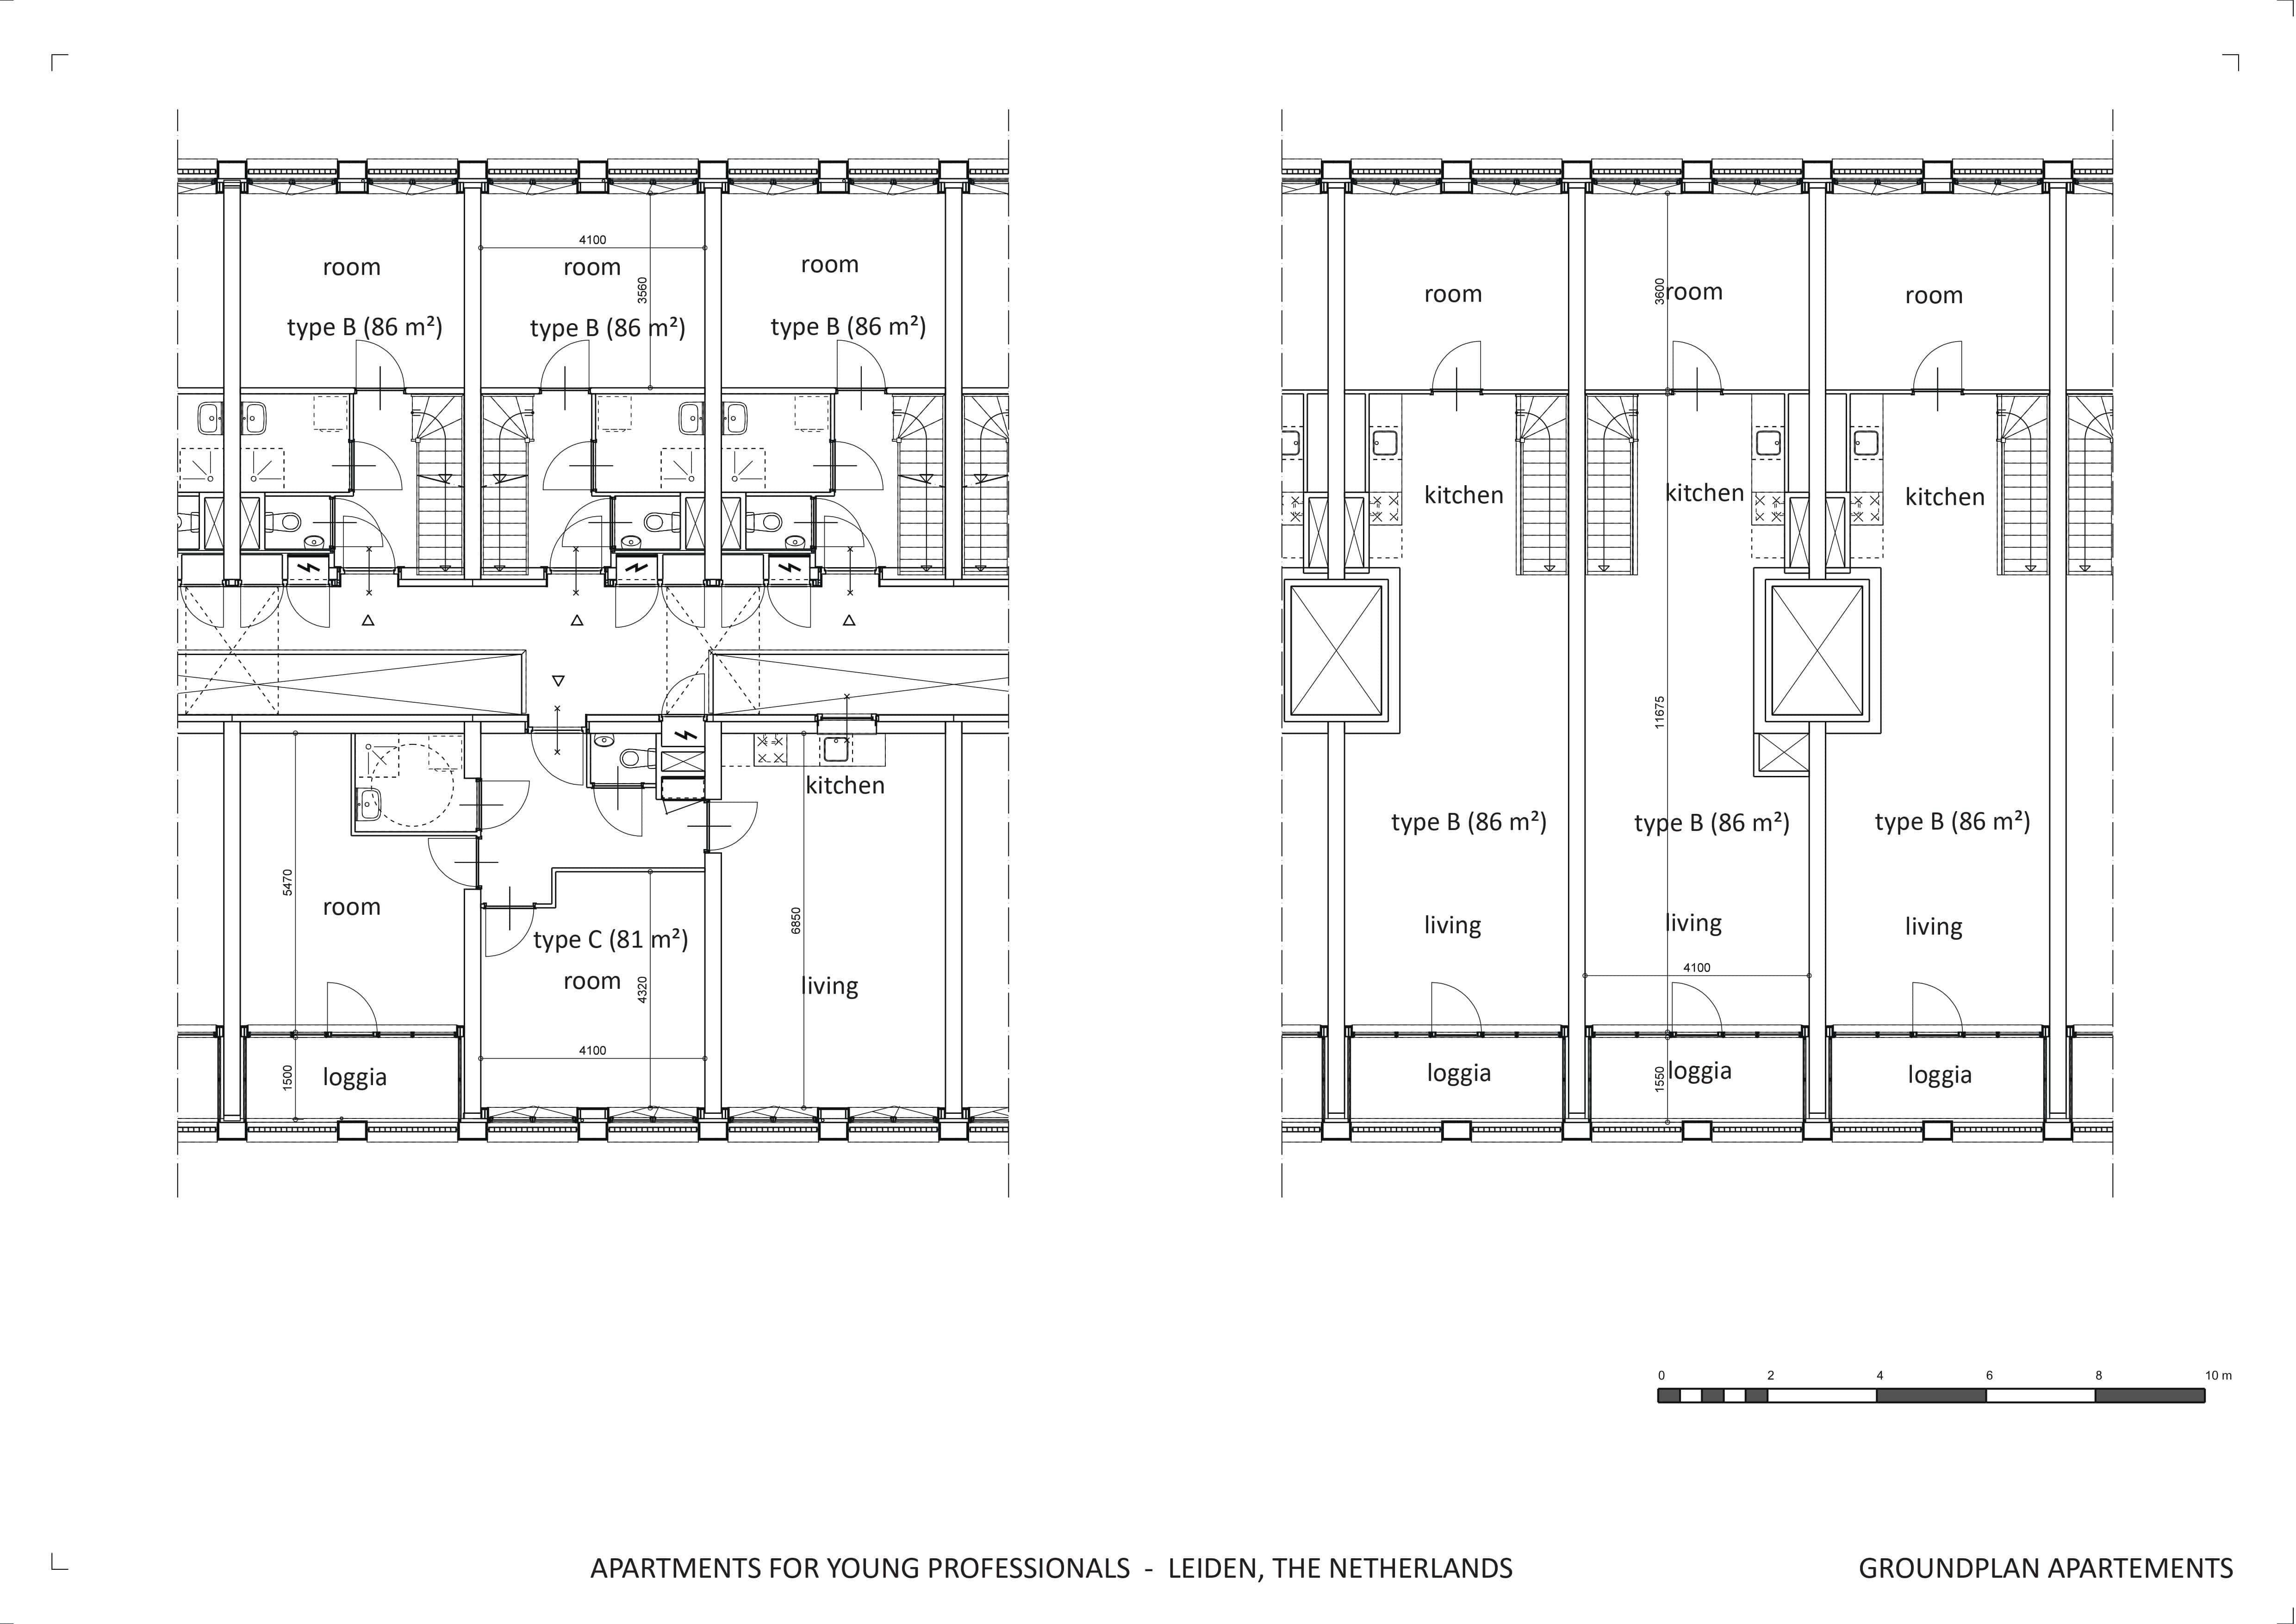 groundplan apartments - 2st and 3st floor block waardgracht splinter architecten}